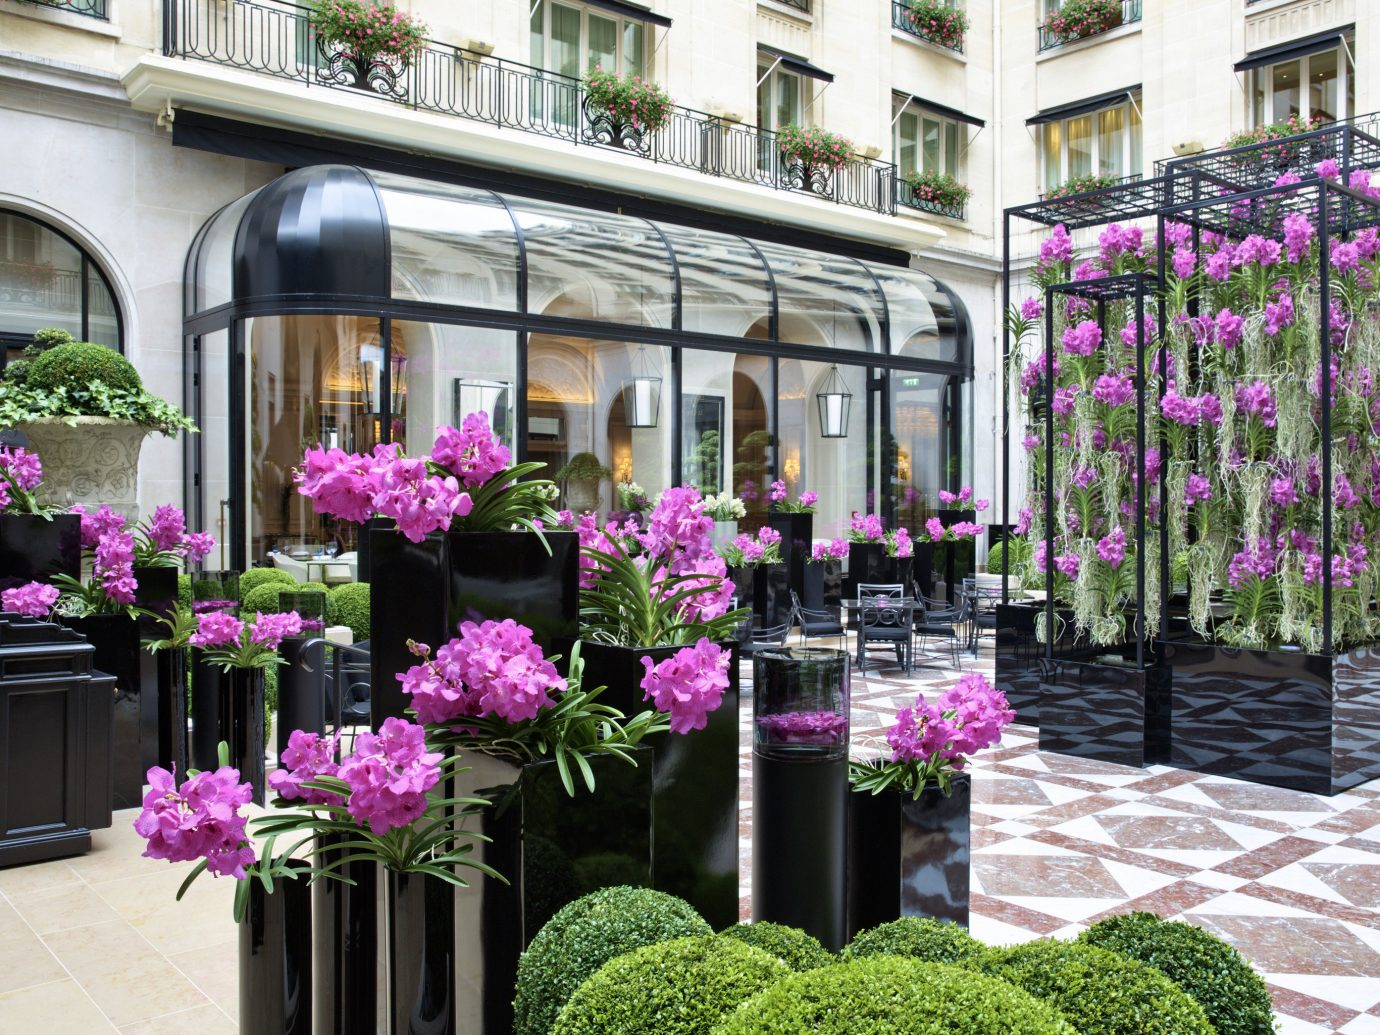 Hotels outdoor flower arranging pink floristry flower aisle purple flora plant Balcony floral design Courtyard estate Garden retail decorated